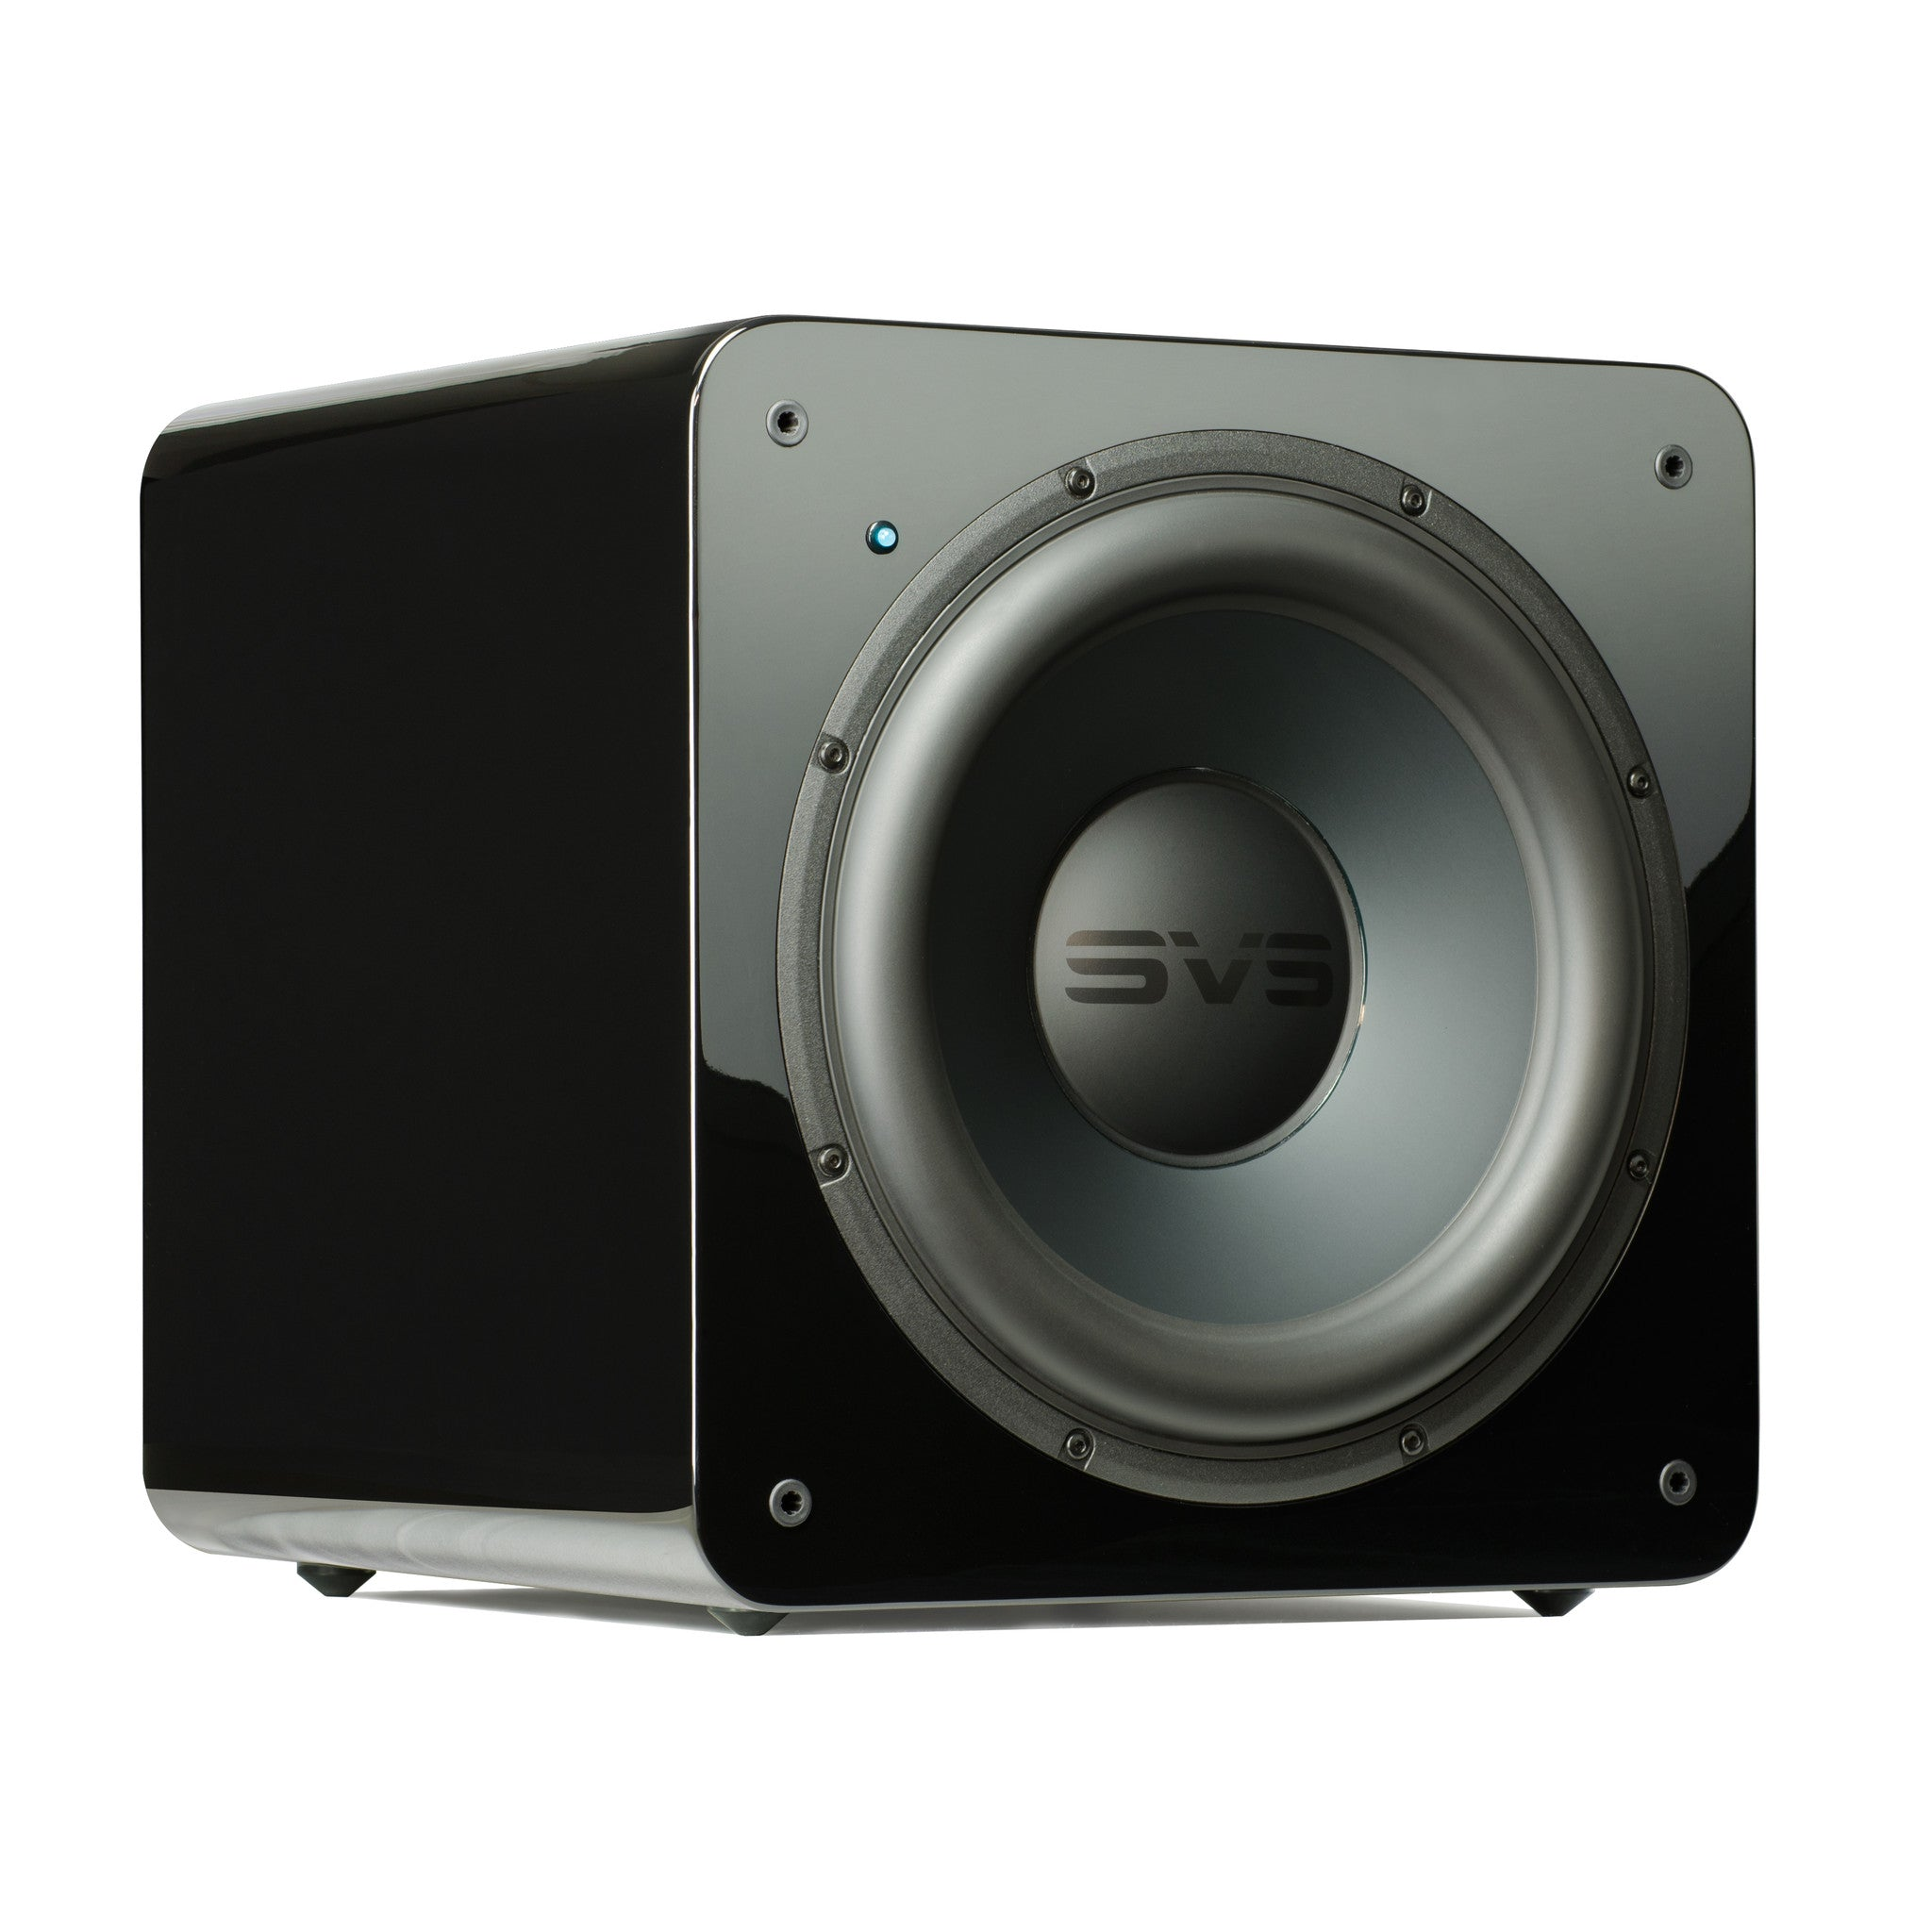 "SVS SB-2000 500 Watt DSP Controlled, 12"" Compact Sealed Subwoofer"